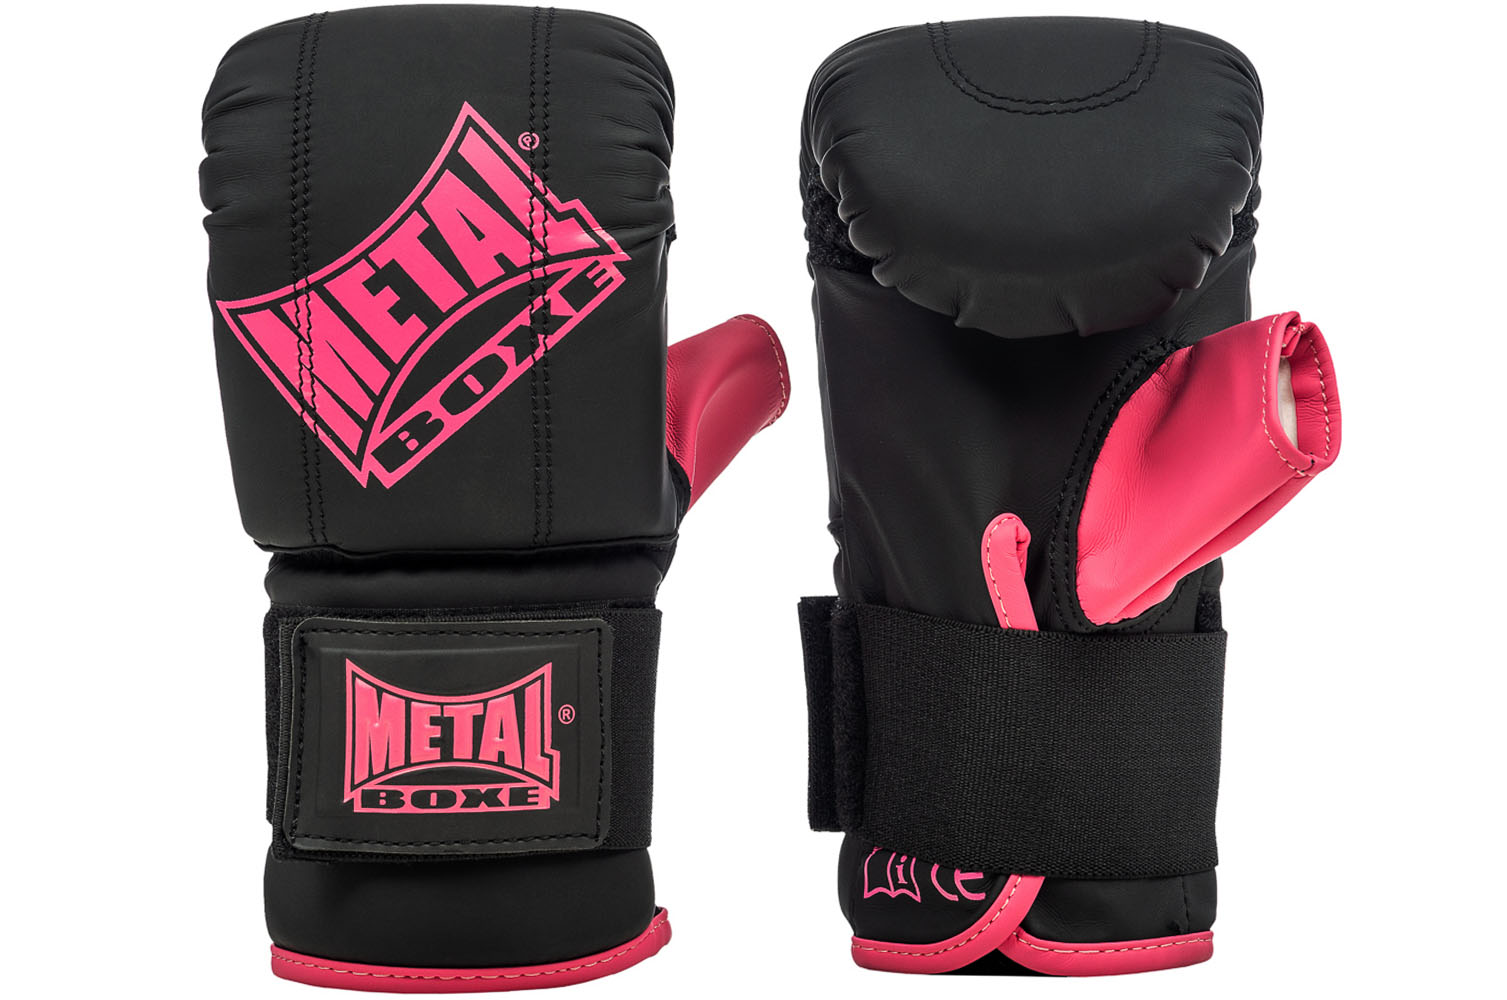 Gants De Sac Lady, Metal Boxe MB201F